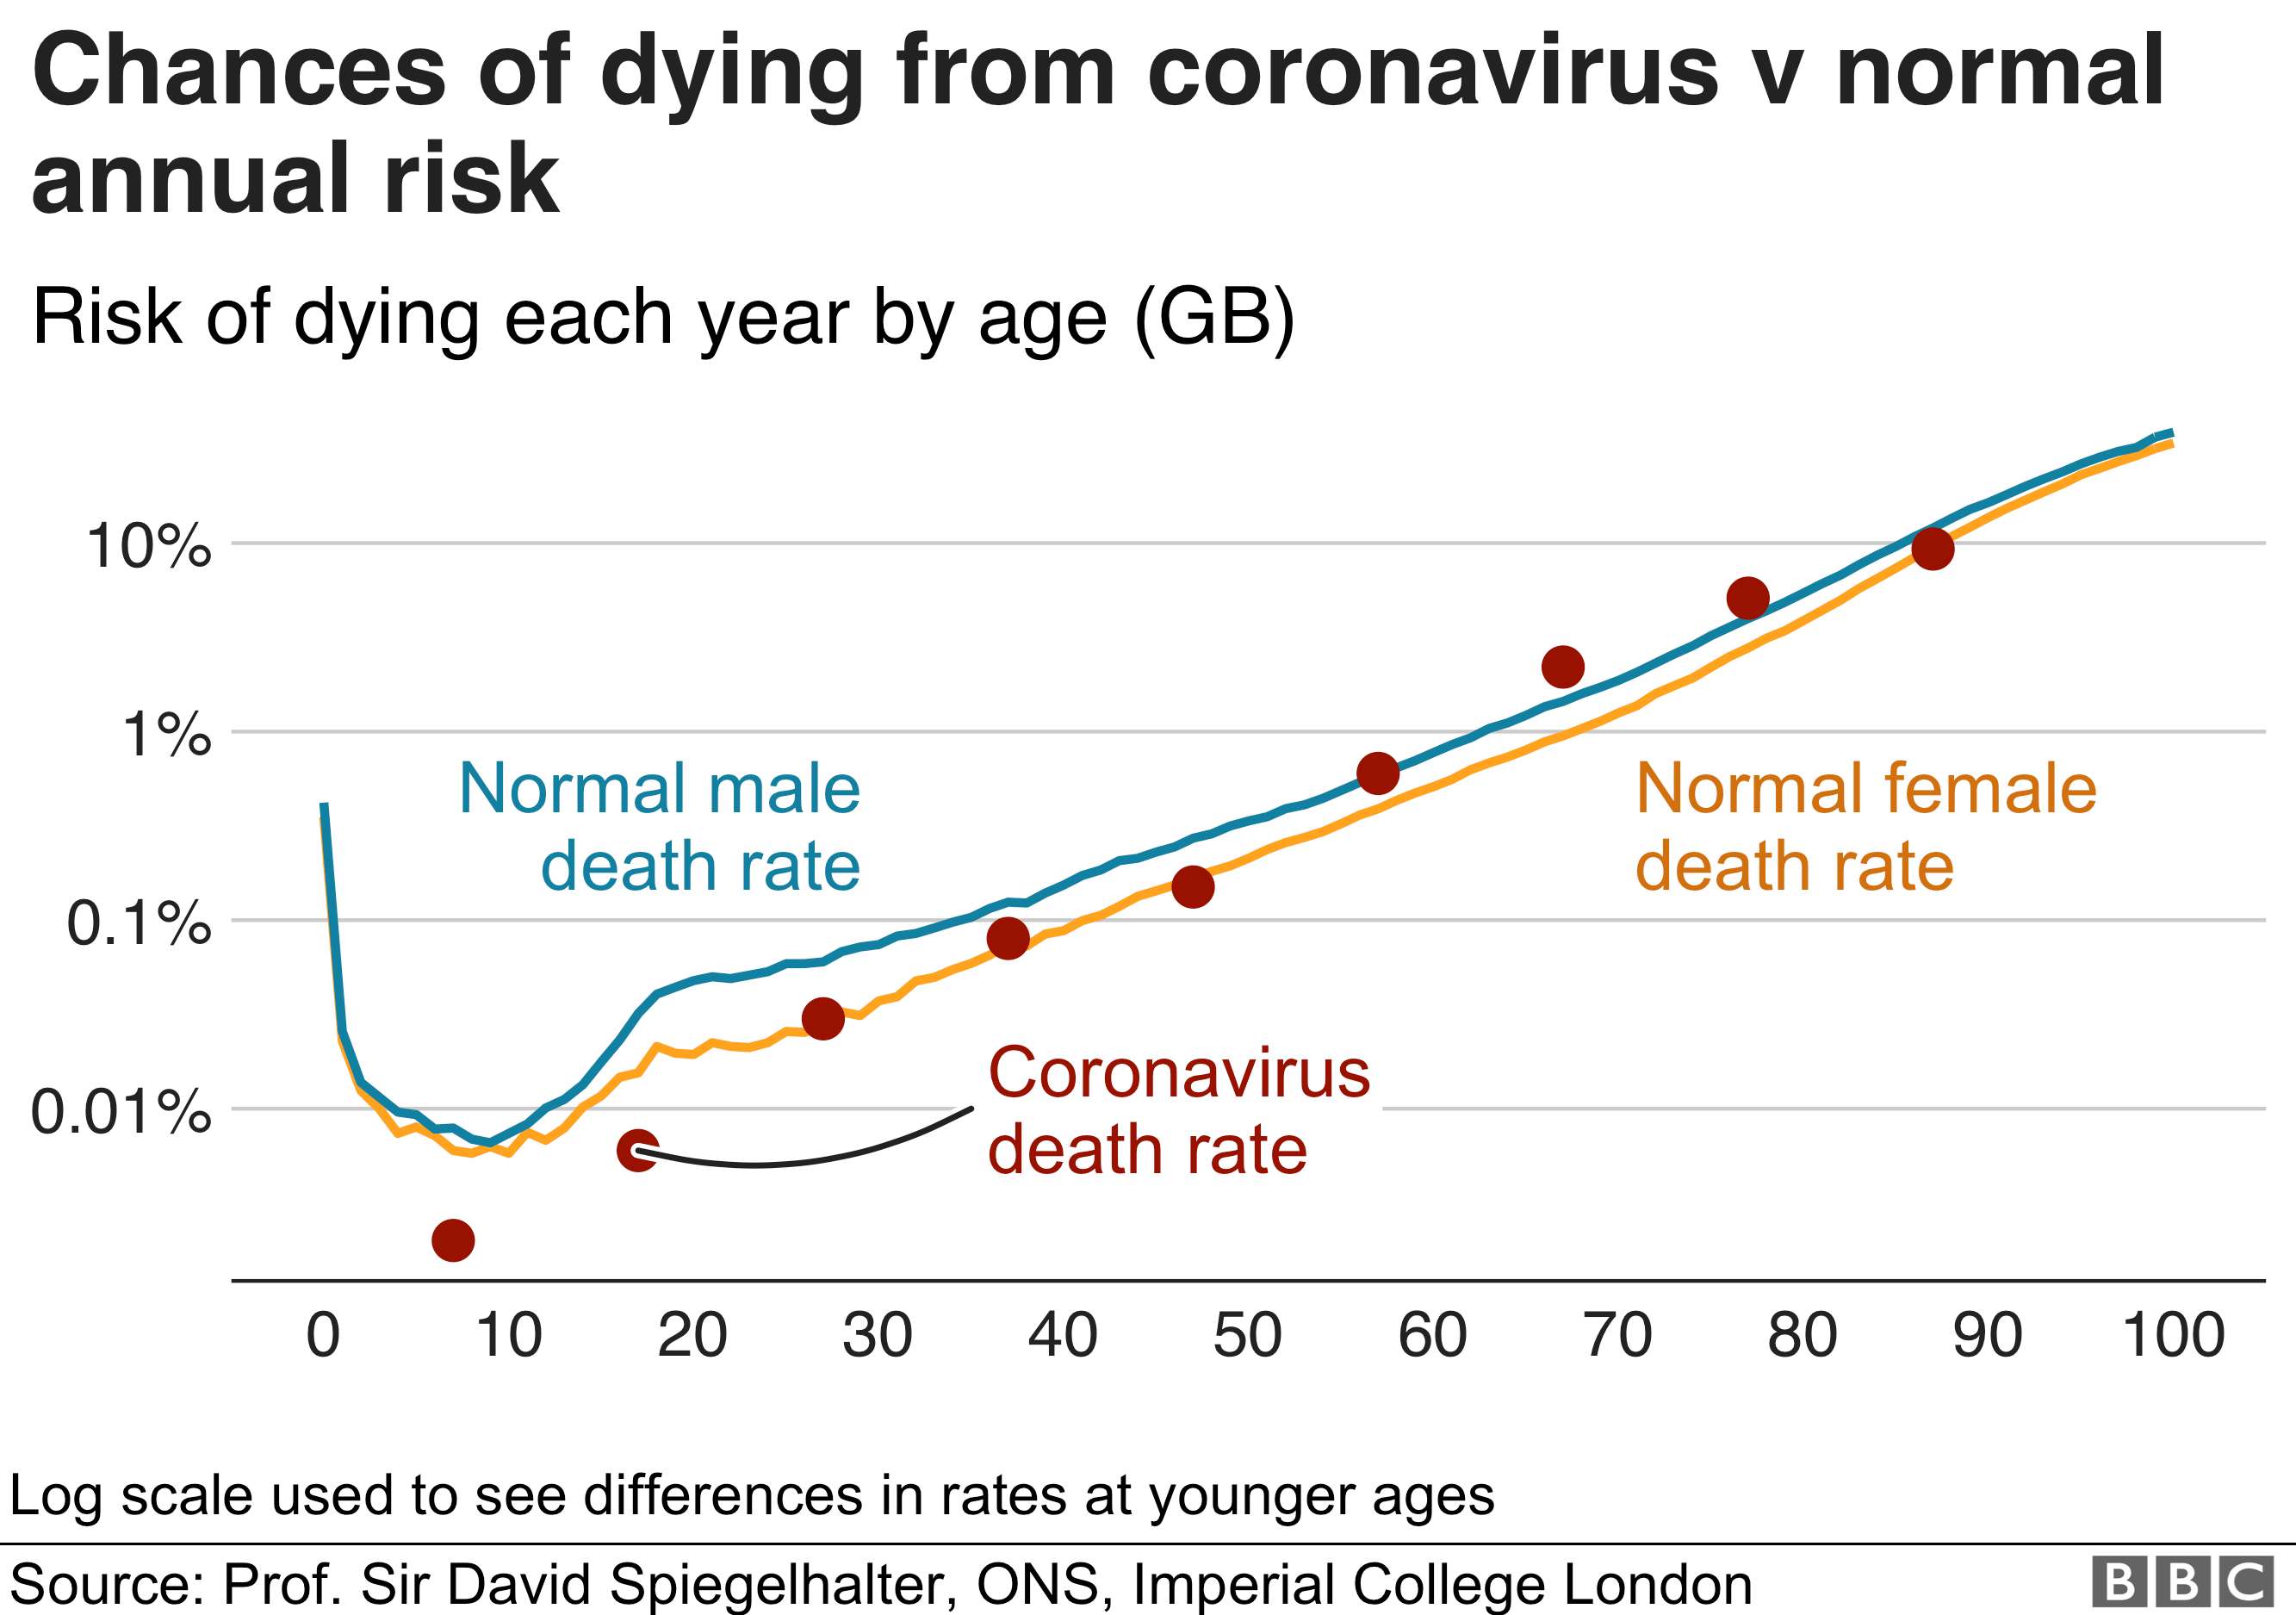 Chances of dying from coronavirus vs normal risk